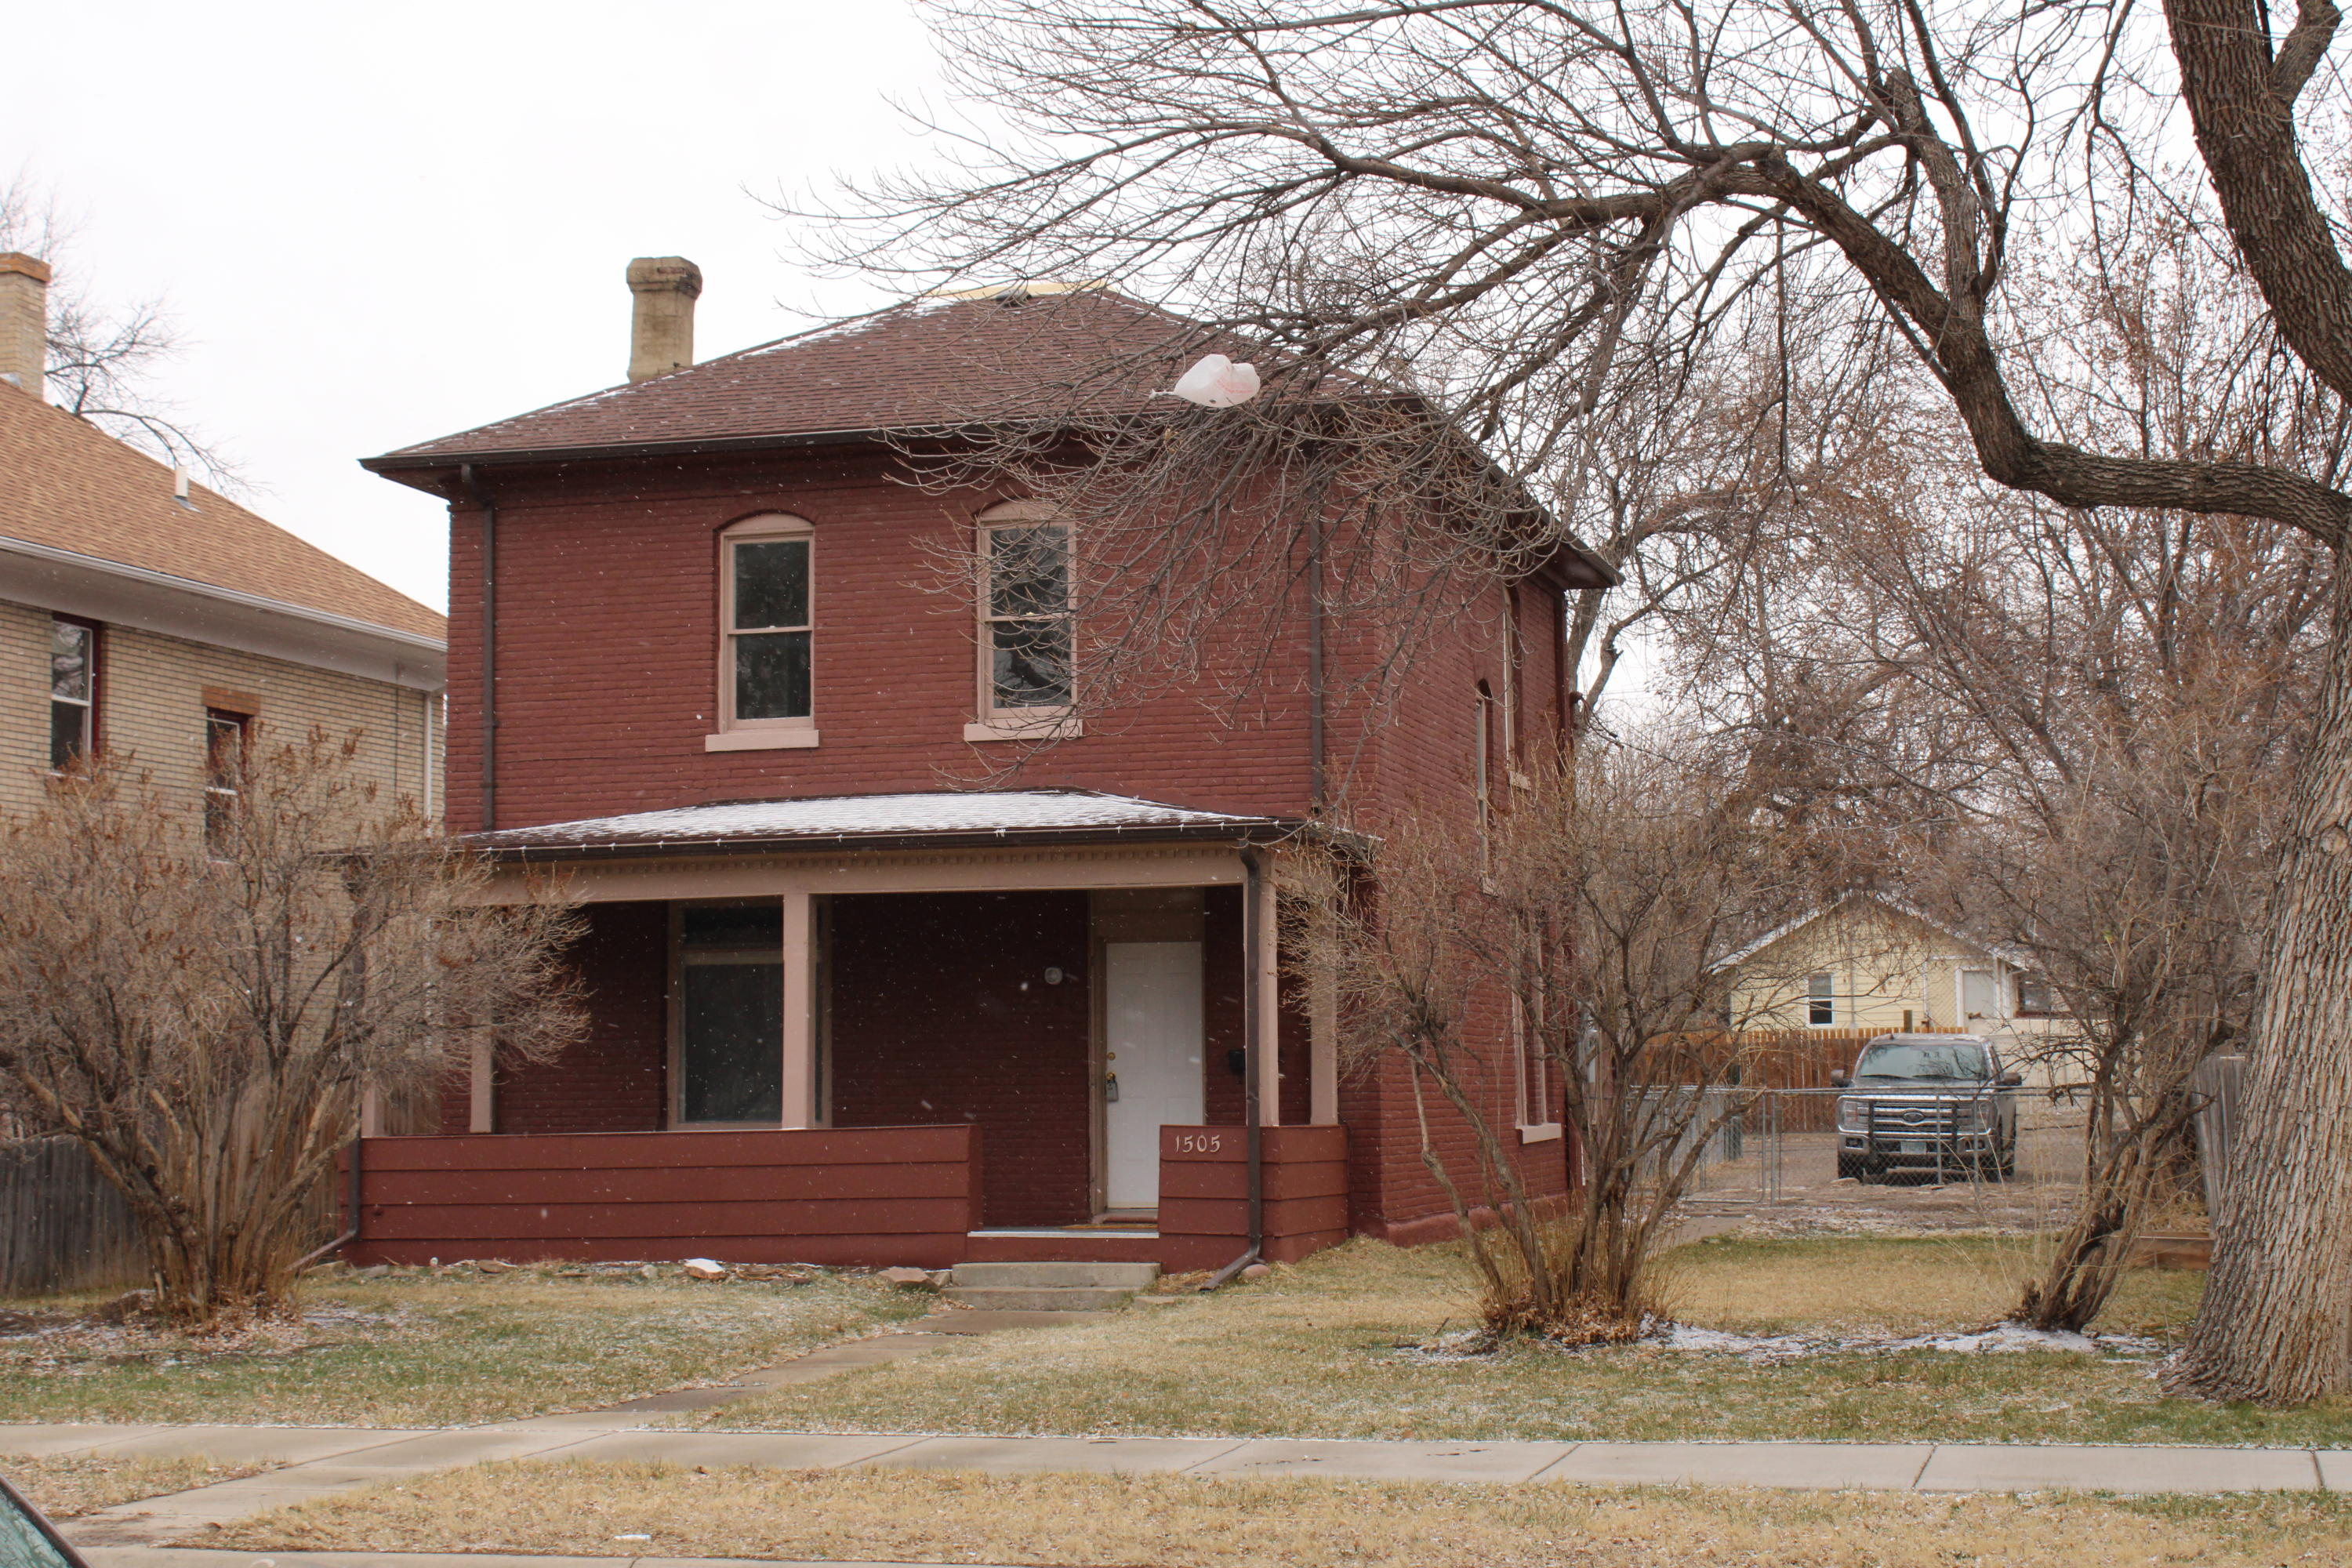 Turn of the Century Brick Home! Don't miss this 3 Bedroom, 2 Bath brick home with a fenced yard and patio. 3 Bedrooms on the same level and a Main Floor laundry.Call Laura Helms 406-590-0772 or your Real Estate Professional for more information.